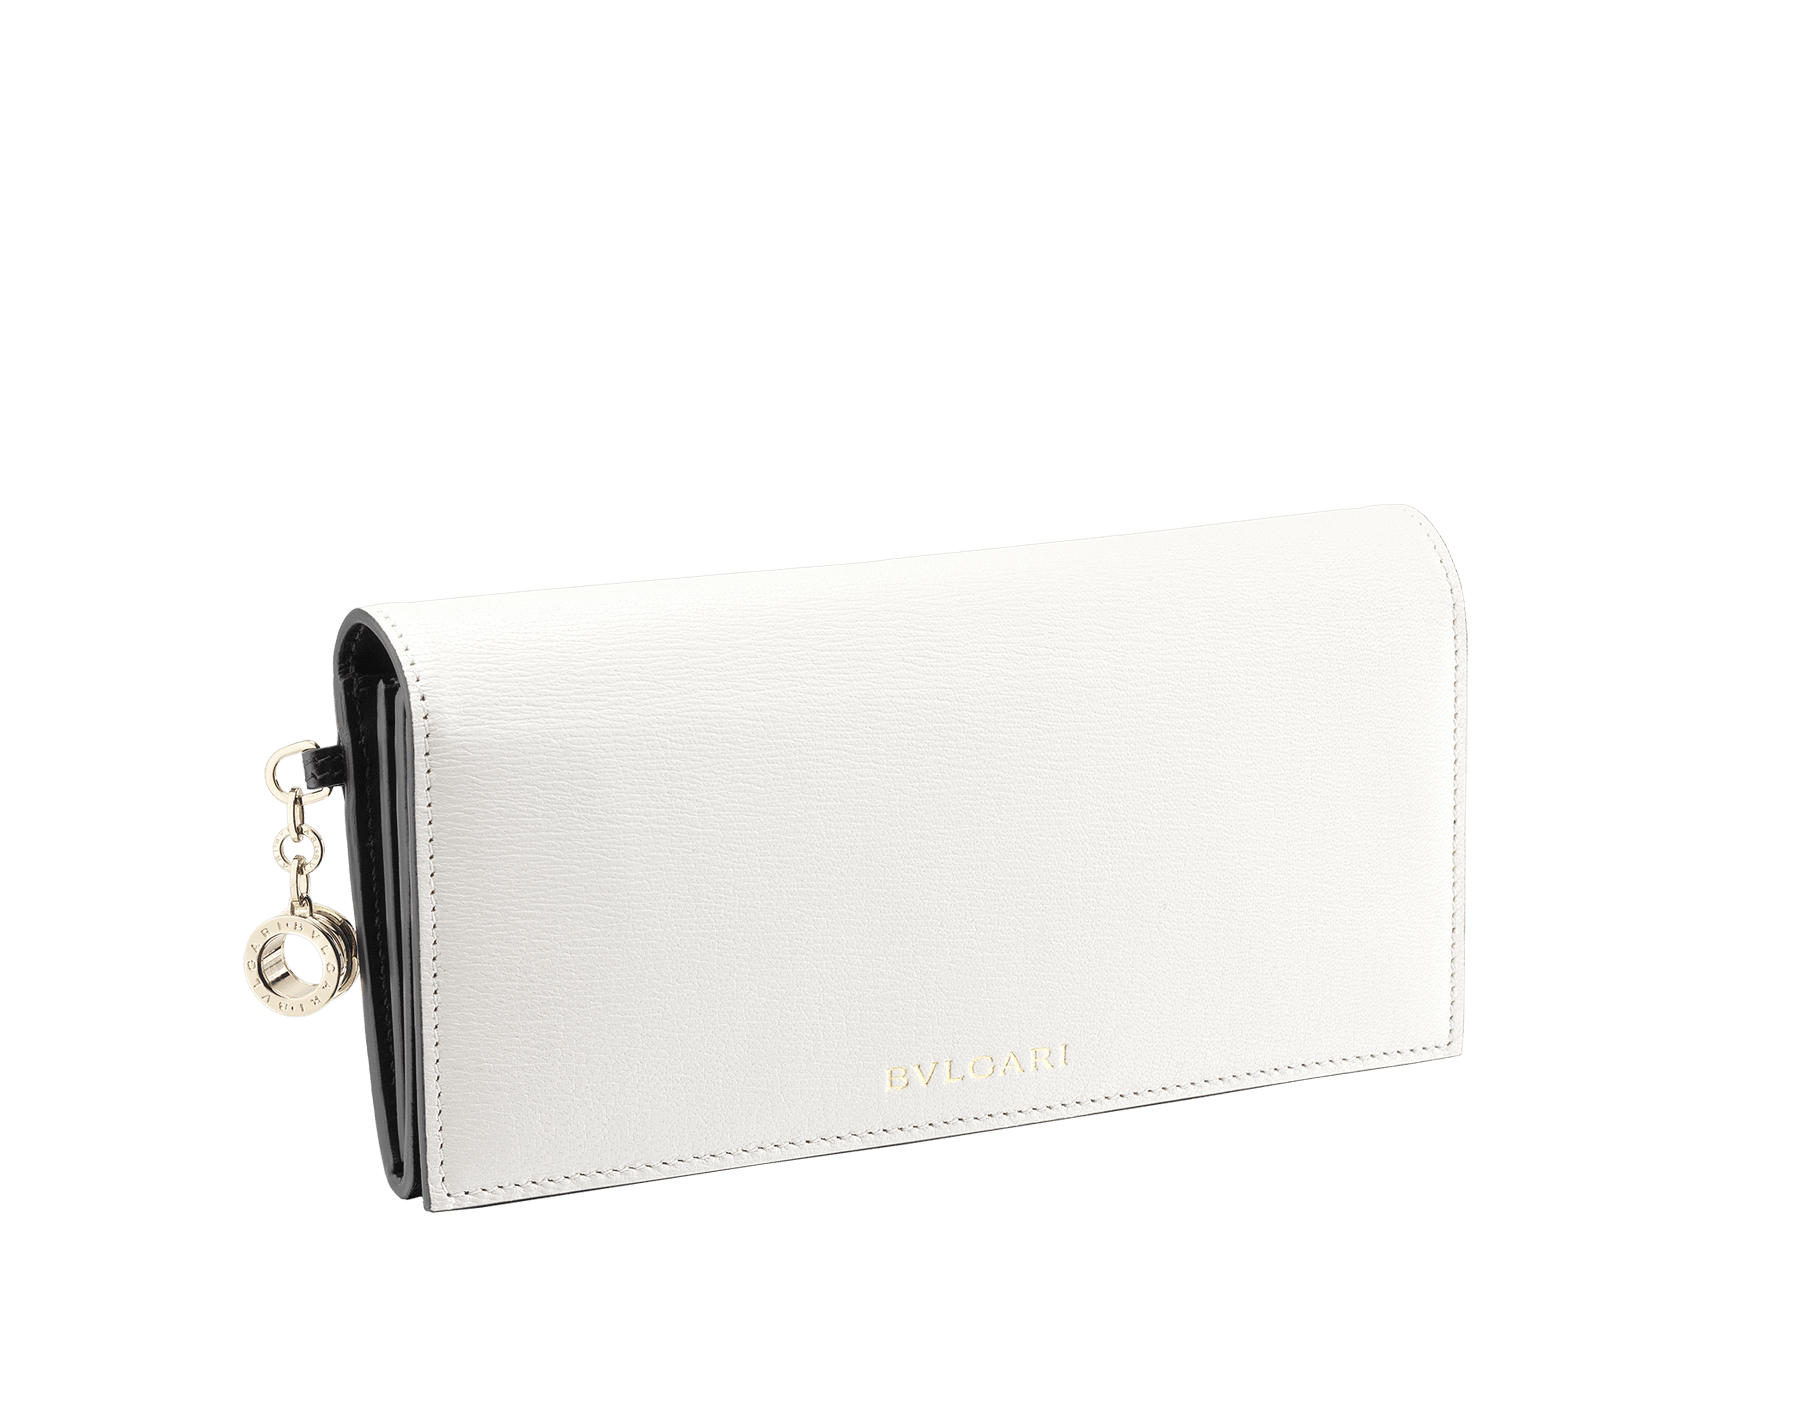 B.zero1 wallet pochette in white and black goatskin. Iconic B.zero1 charm in light gold plated brass and closure clip. 288231 image 2